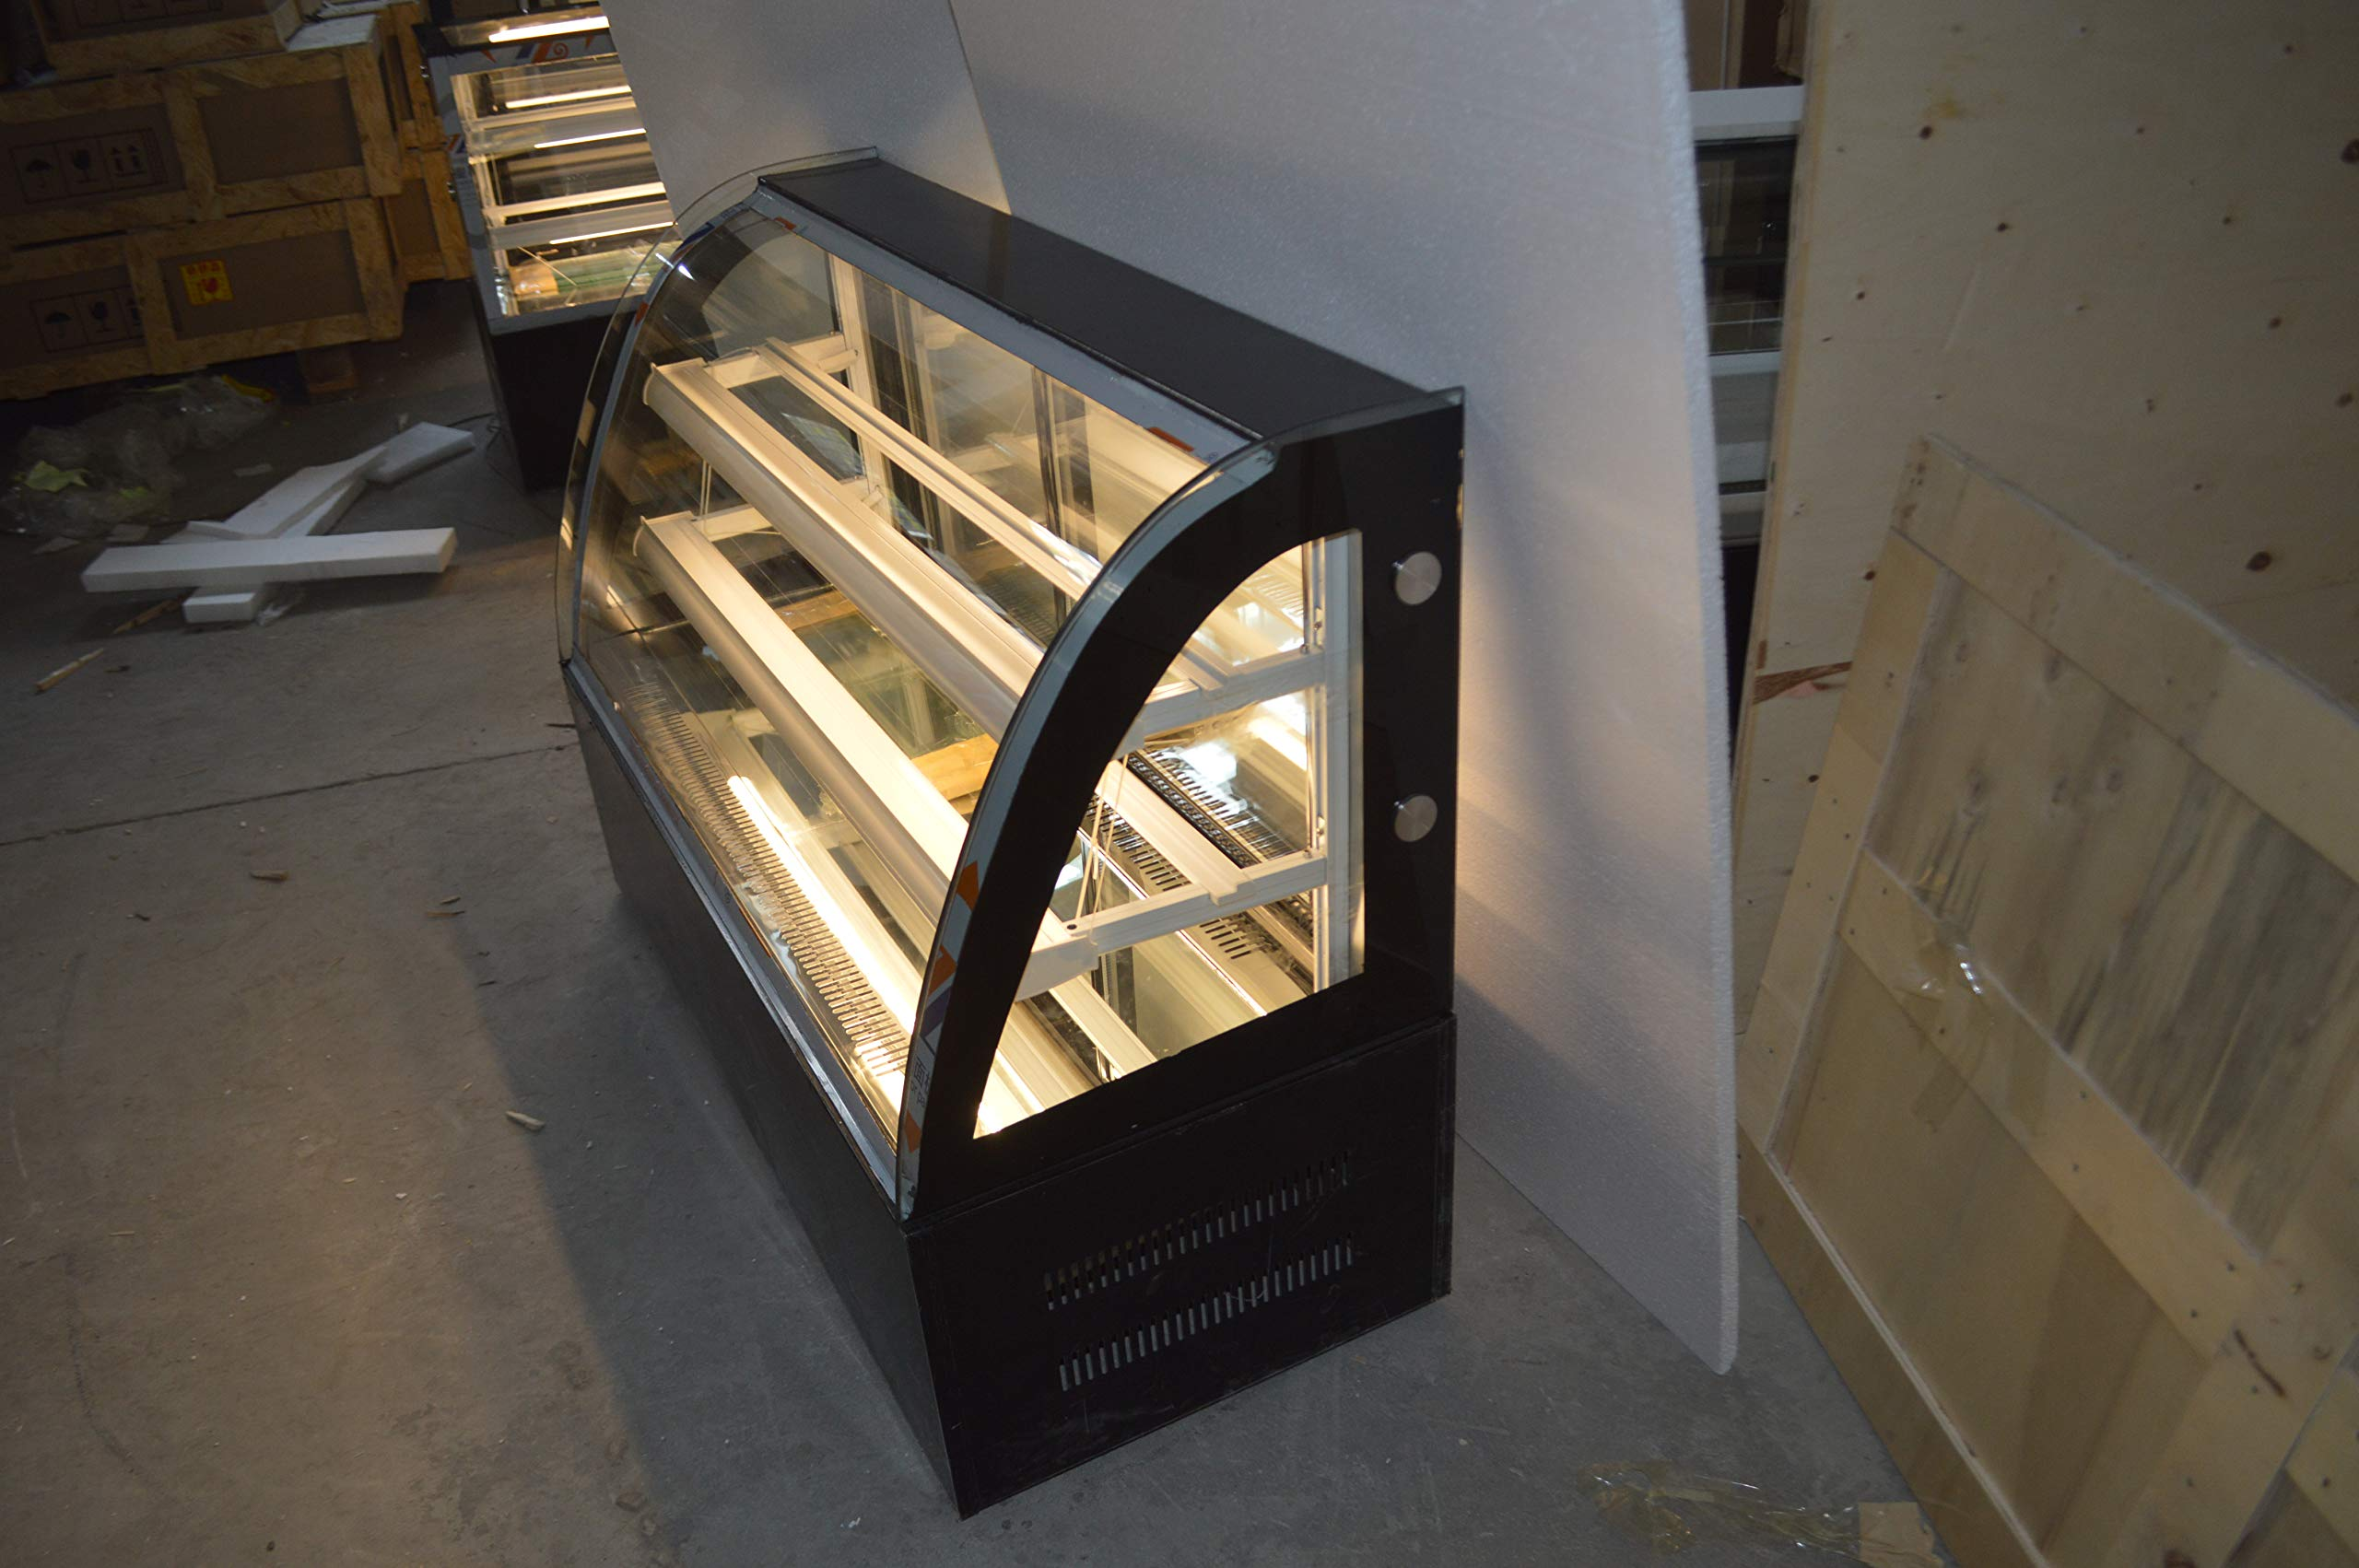 INTBUYING 47'' Countertop Bekery Cabinet Display Case Glass Refrigerated Cake Showcase 220V 315W 36-46F by INTBUYING (Image #6)